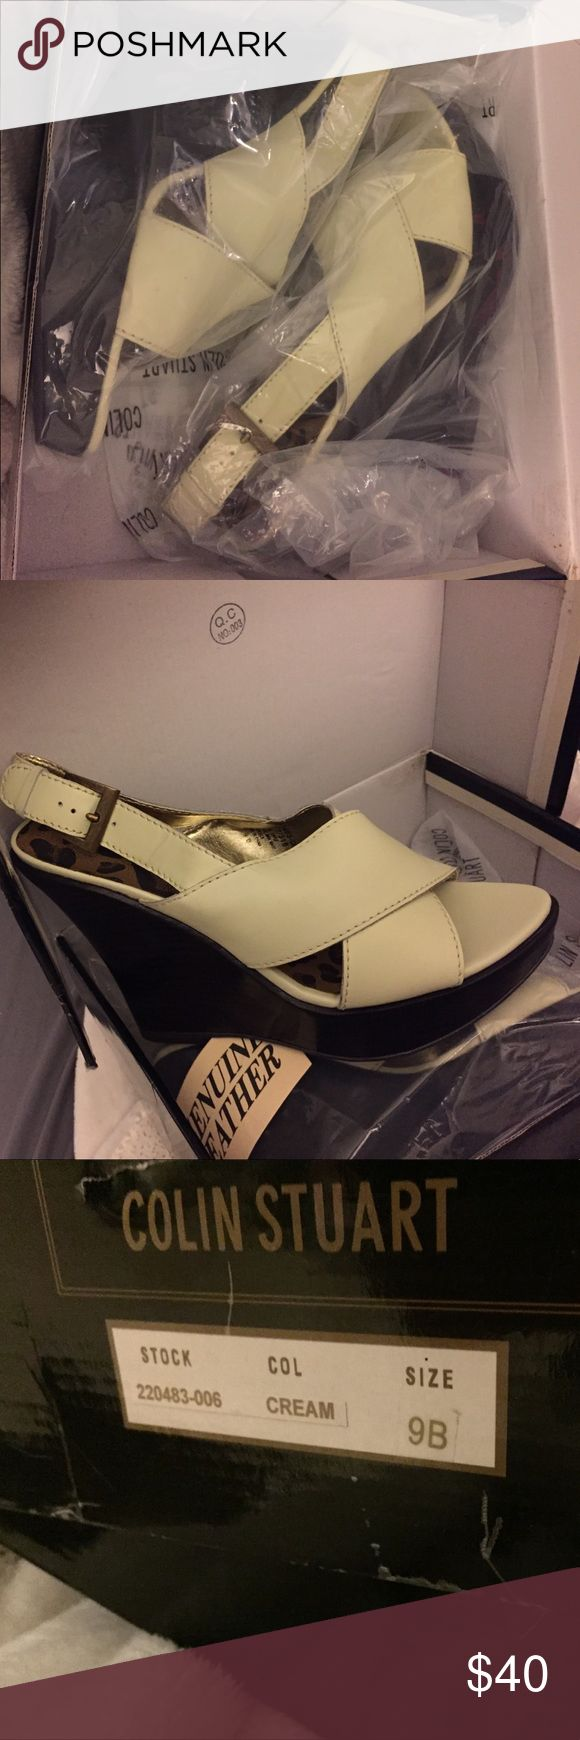 New Colin Stuart Leather Open Toe SlingBack Wedges Size 9: New In Box Genuine Leather Cream colored open toe, sling back wedged heels. Colin Stuart Shoes Wedges